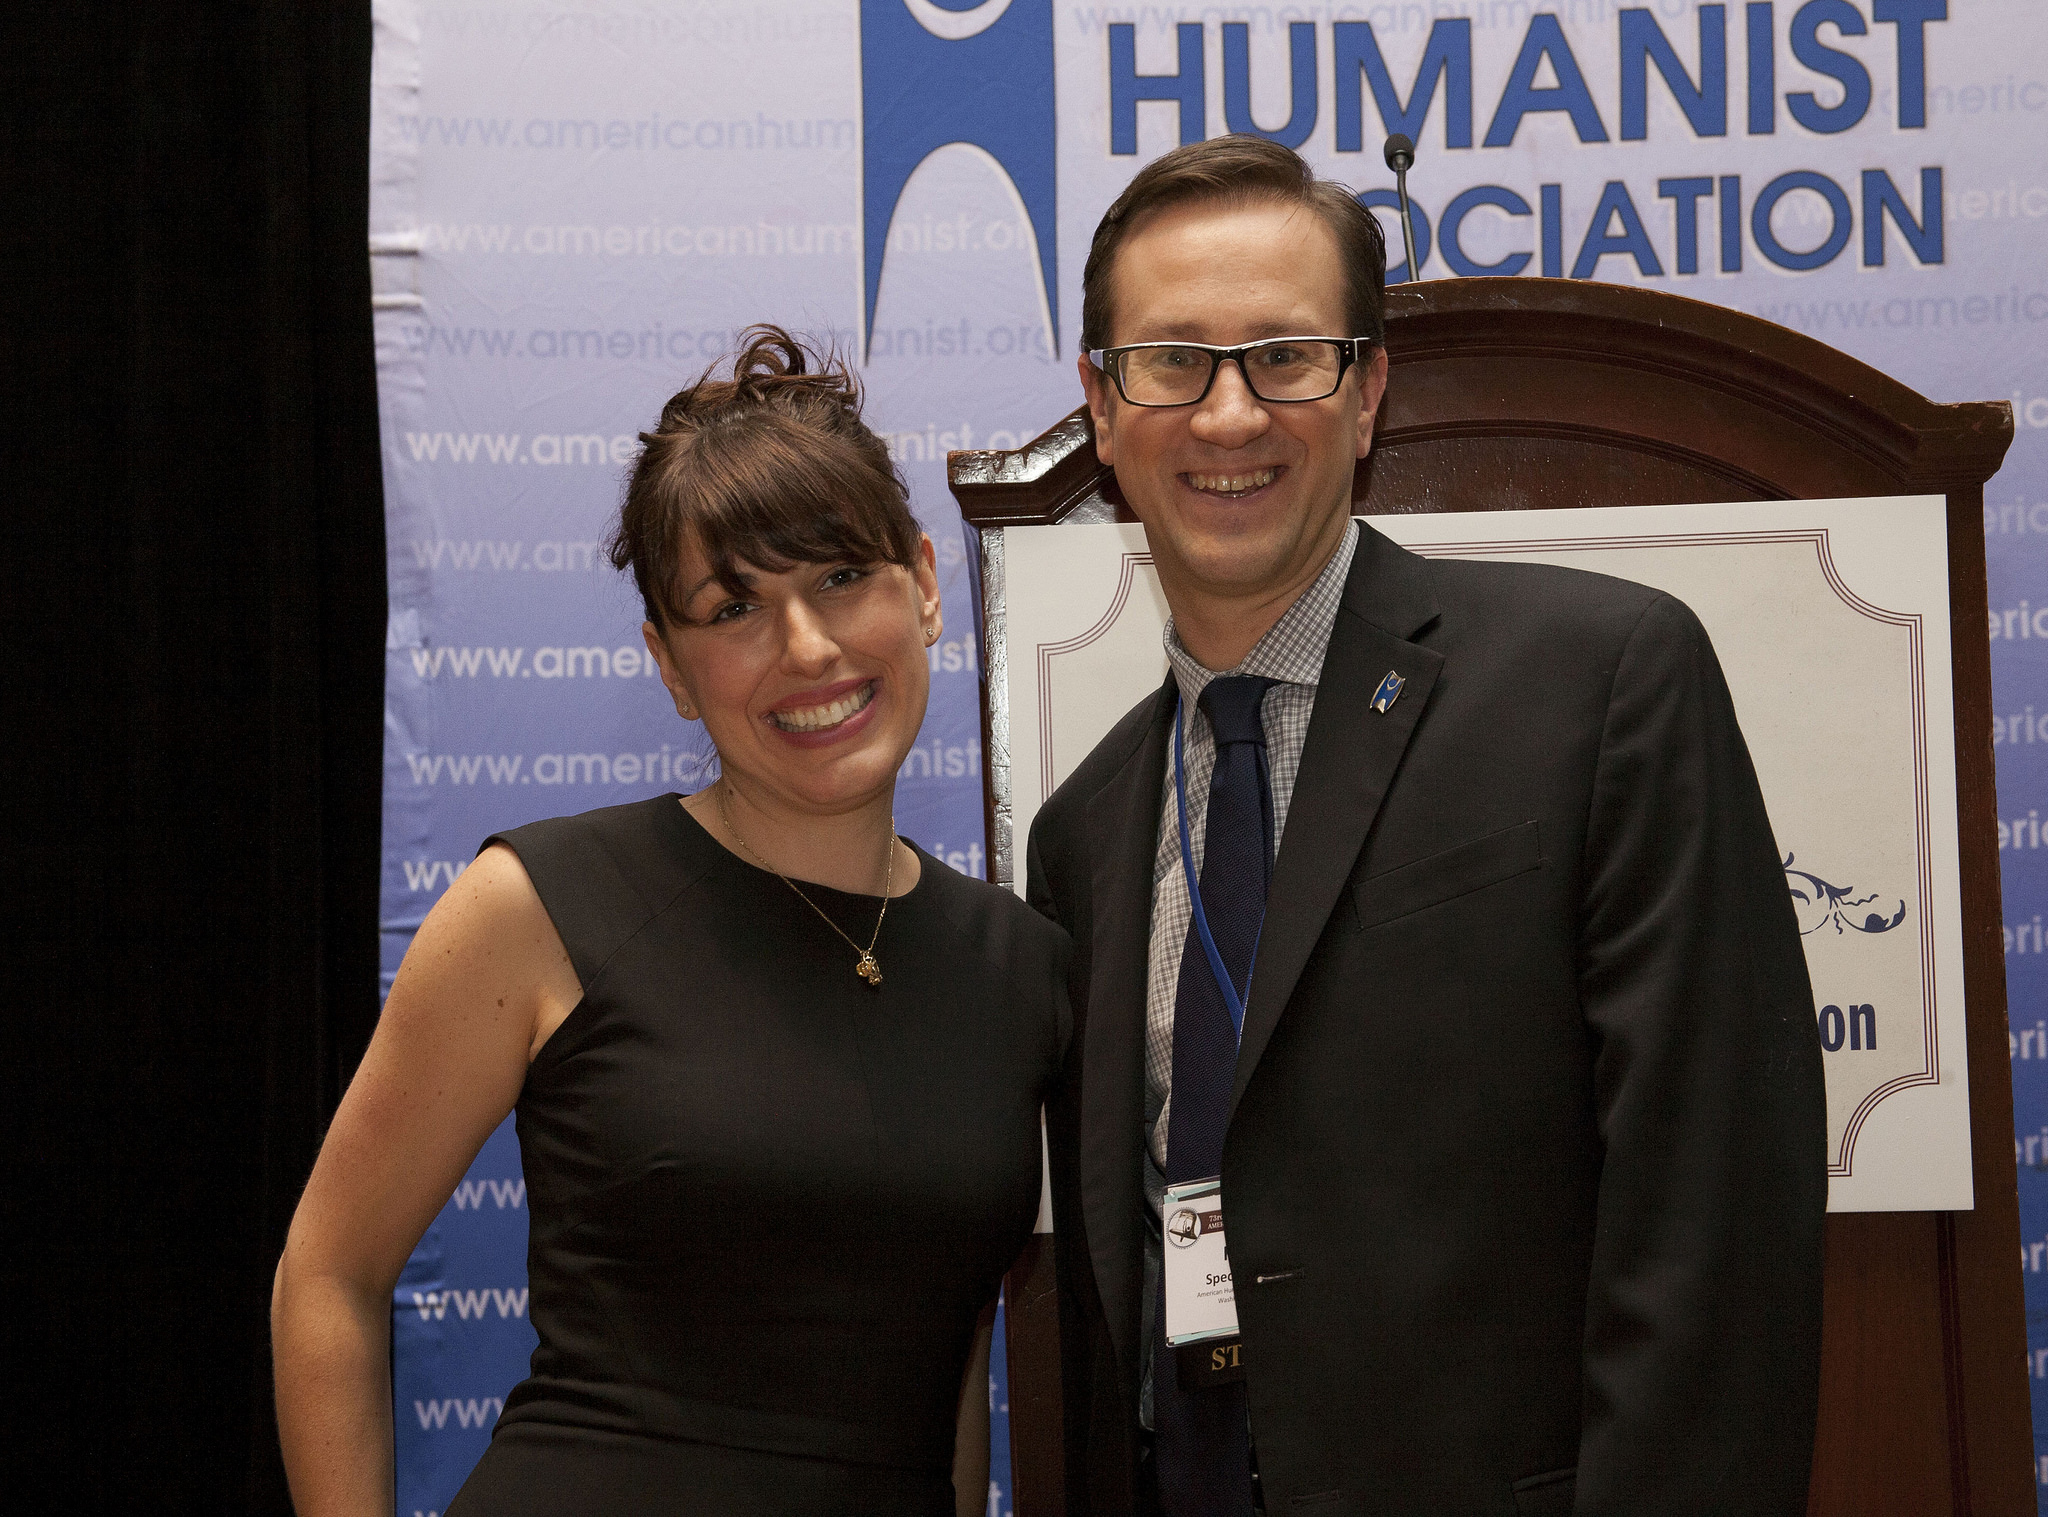 2014 Humanist Heroine, Jessica Valenti, with AHA Executive Director Roy Speckhardt